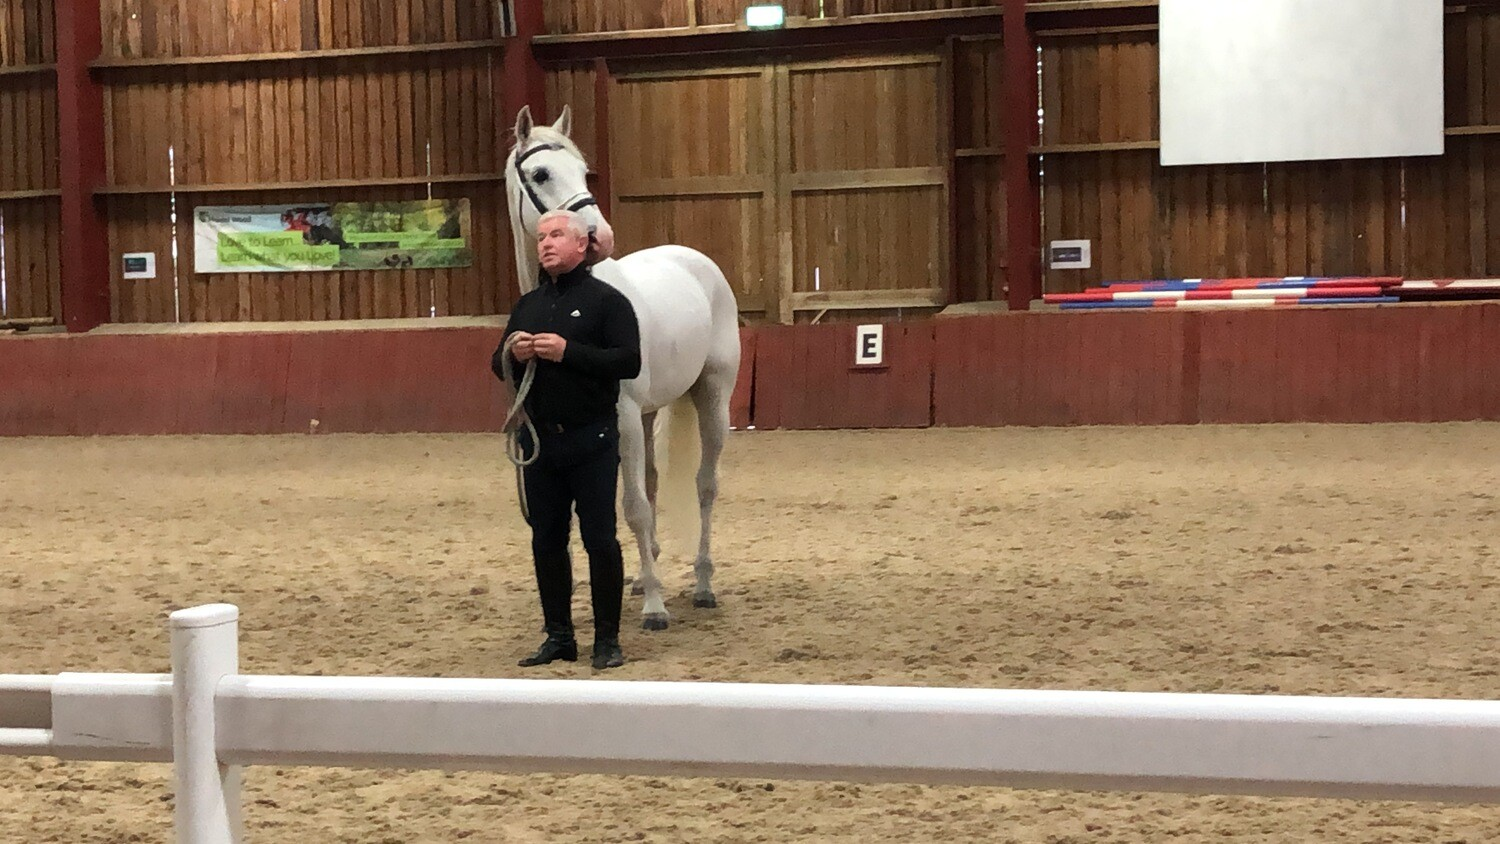 A Virtual Demo - A collection of 19 videos filmed working with clients and their horses. Online link will be emailed. (normal price £91, COVD-19 price £25